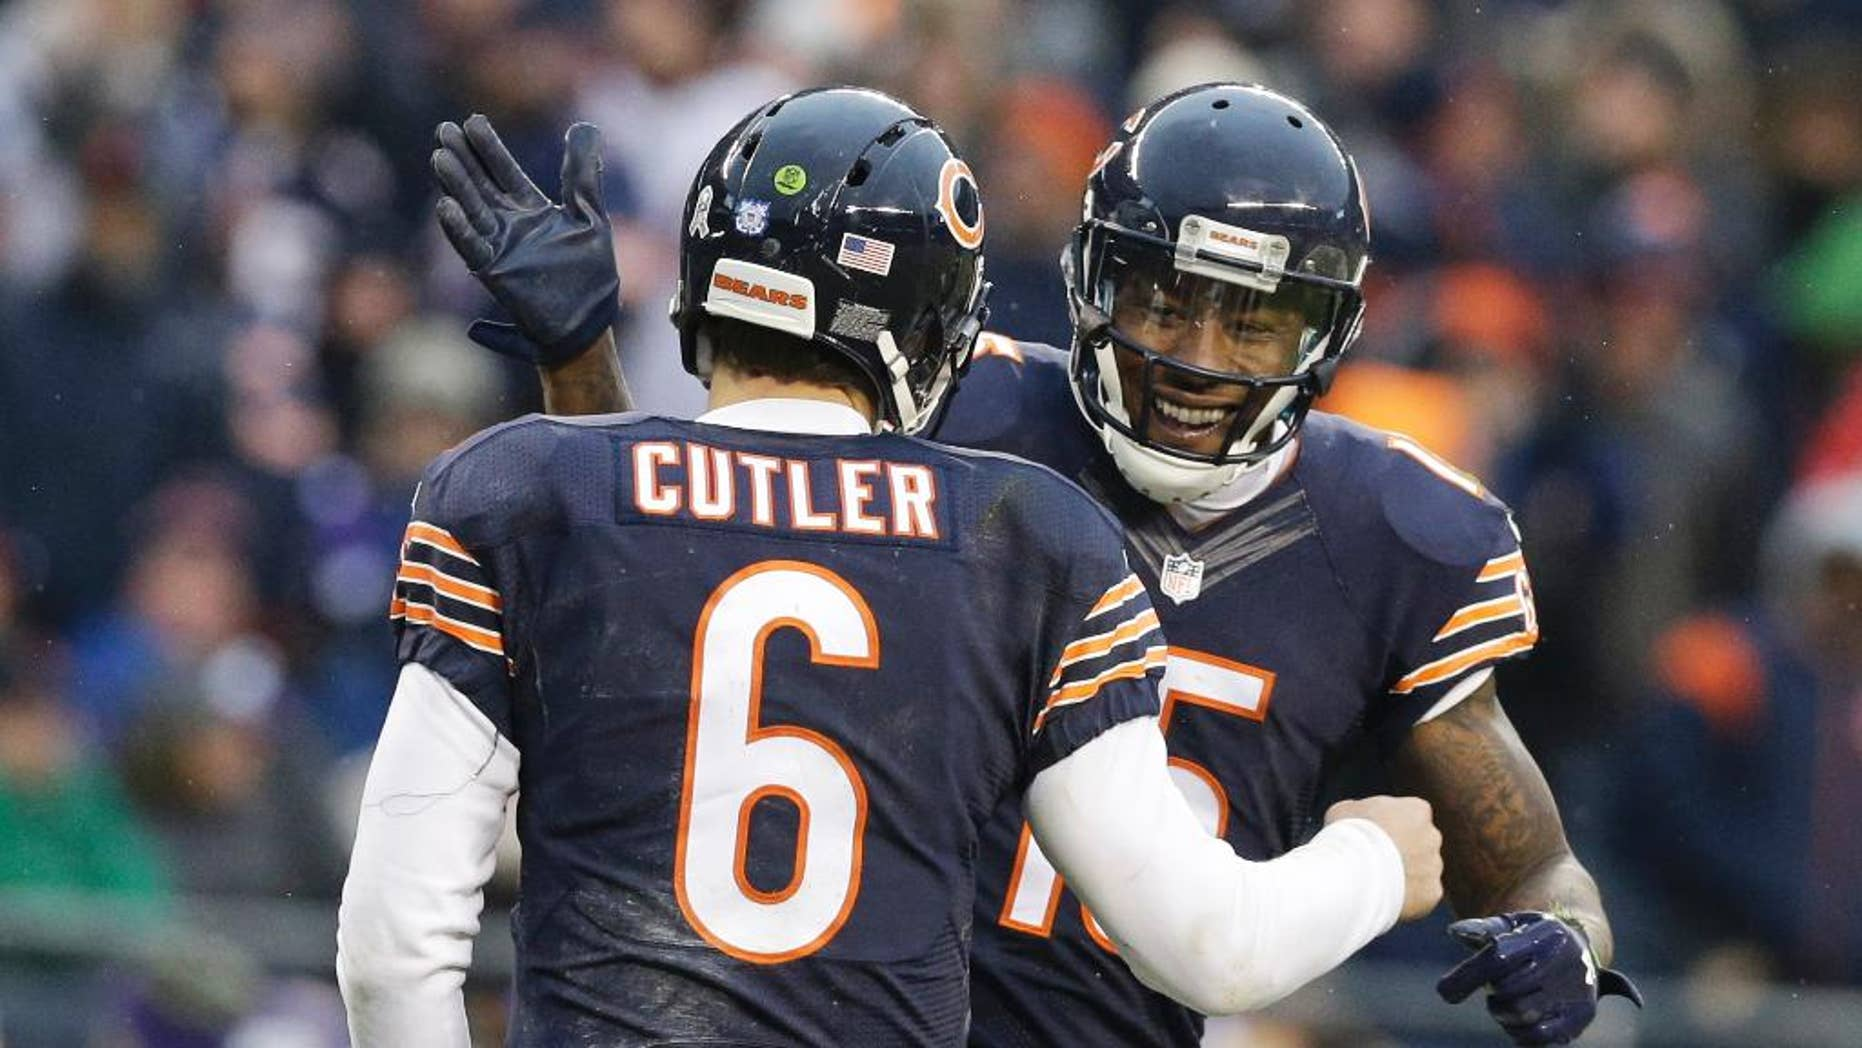 Chicago Bears receiver Brandon Marshall (15) celebrates his touchdown reception with quarterback Jay Cutler (6) during the second half of an NFL football game against the Minnesota Vikings Sunday, Nov. 16, 2014 in Chicago. (AP Photo/Nam Y. Huh)